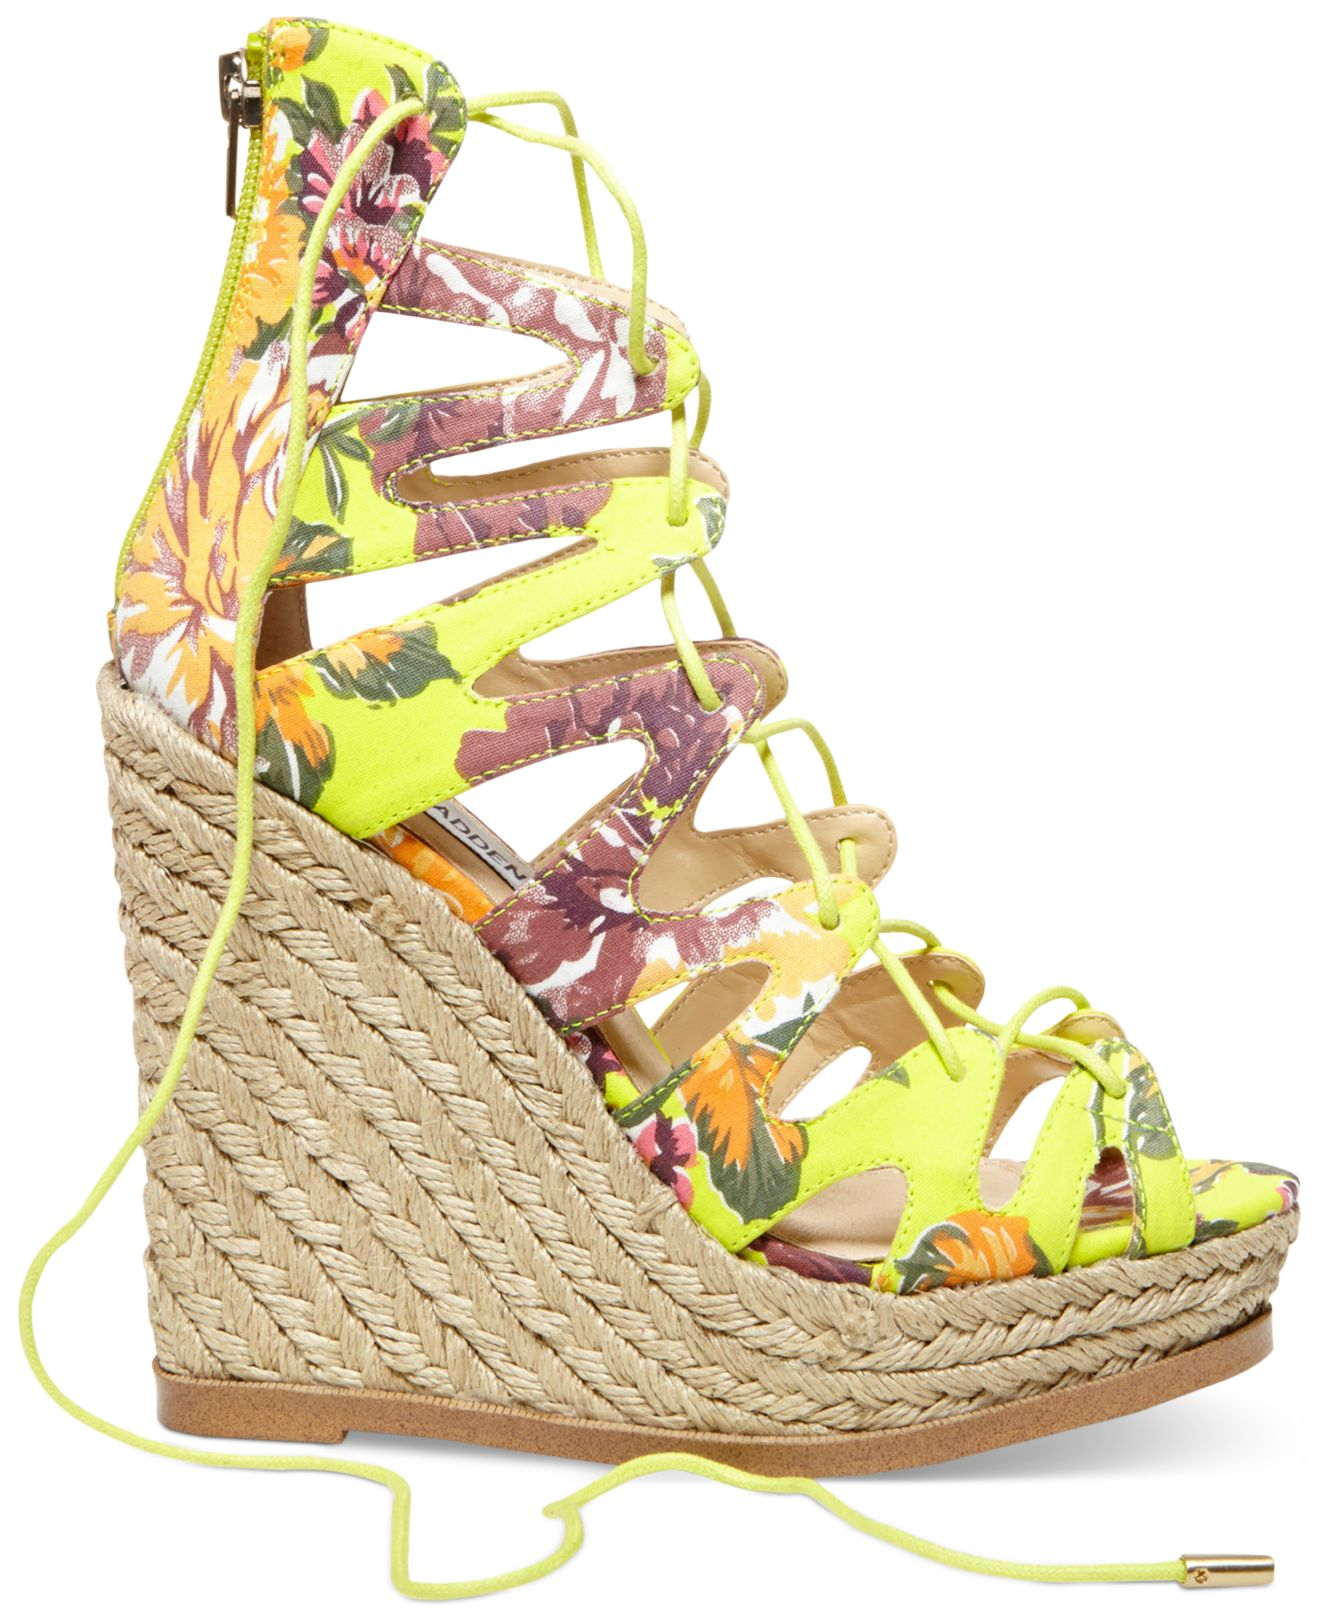 0aac07ee32 Steve Madden Women'S Theea Ghillie Platform Wedge Sandals in Yellow ...